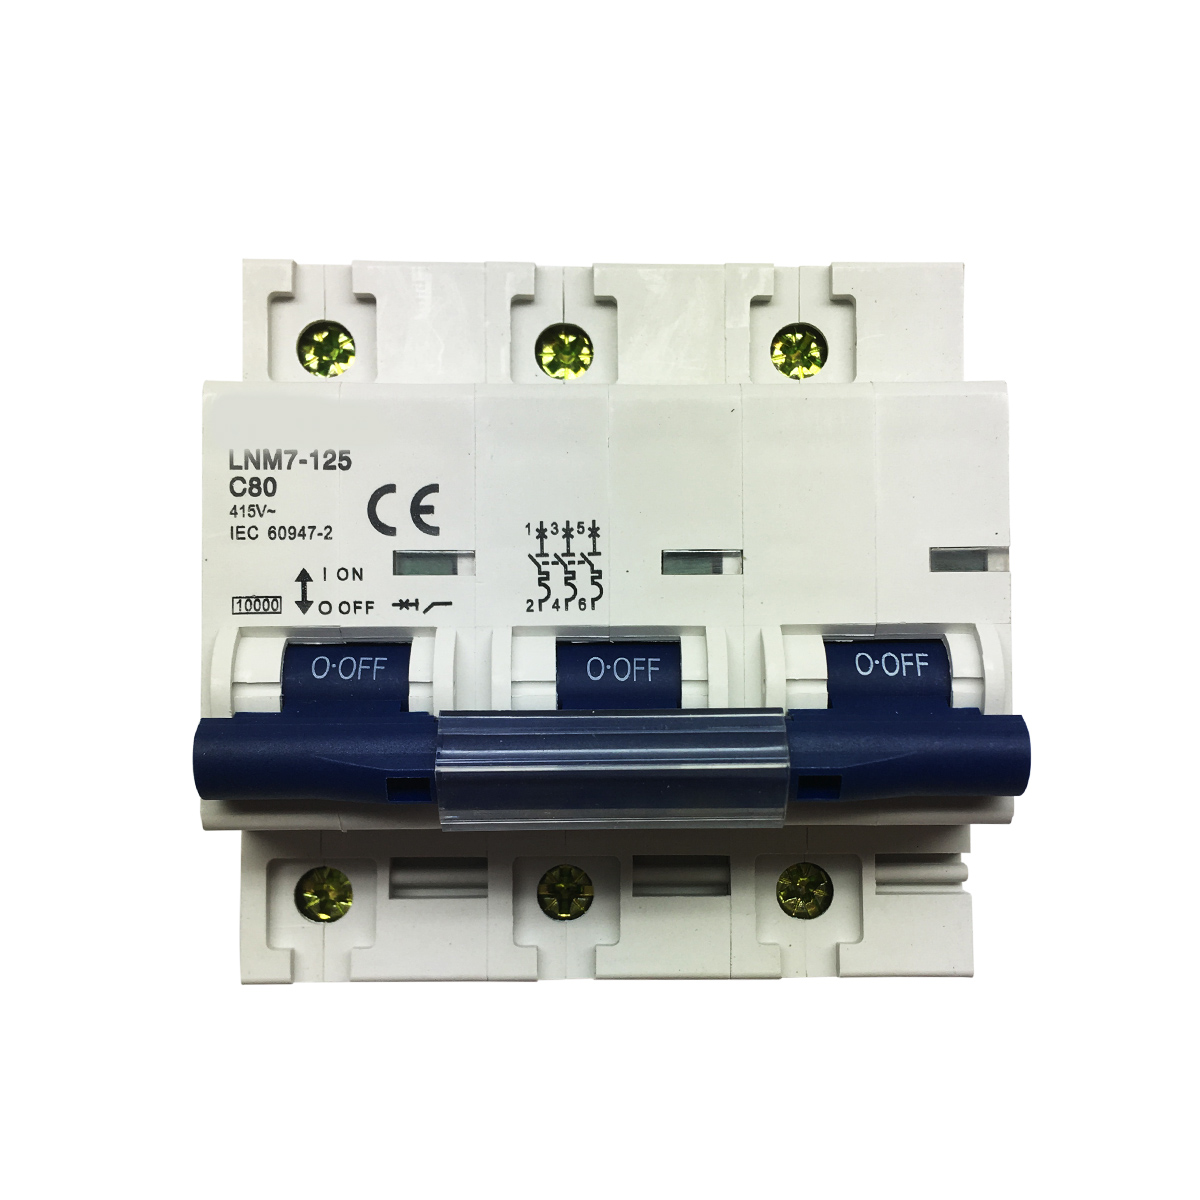 Main Circuit Breaker Switch Search For Wiring Diagrams All Points 421265 On Off 30a 250v 80 Amp A Three 3 Pole Phase Quot Not Box Drawing